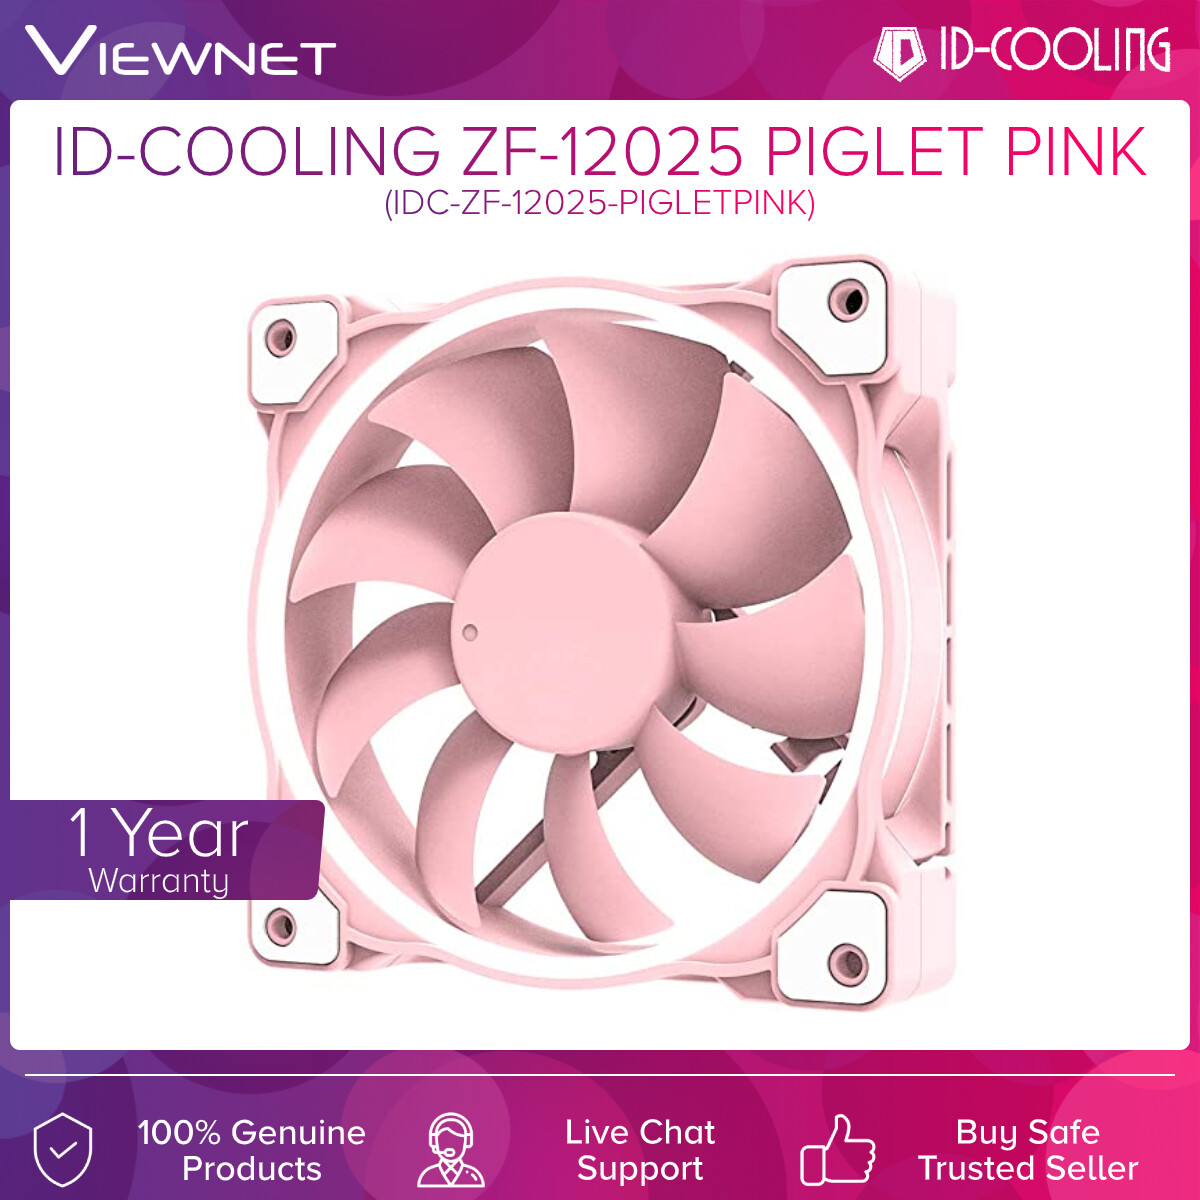 ID-Cooling ZF-12025 Piglet Pink 12cm Cooling Fan (IDC-ZF-12025-PigletPink)